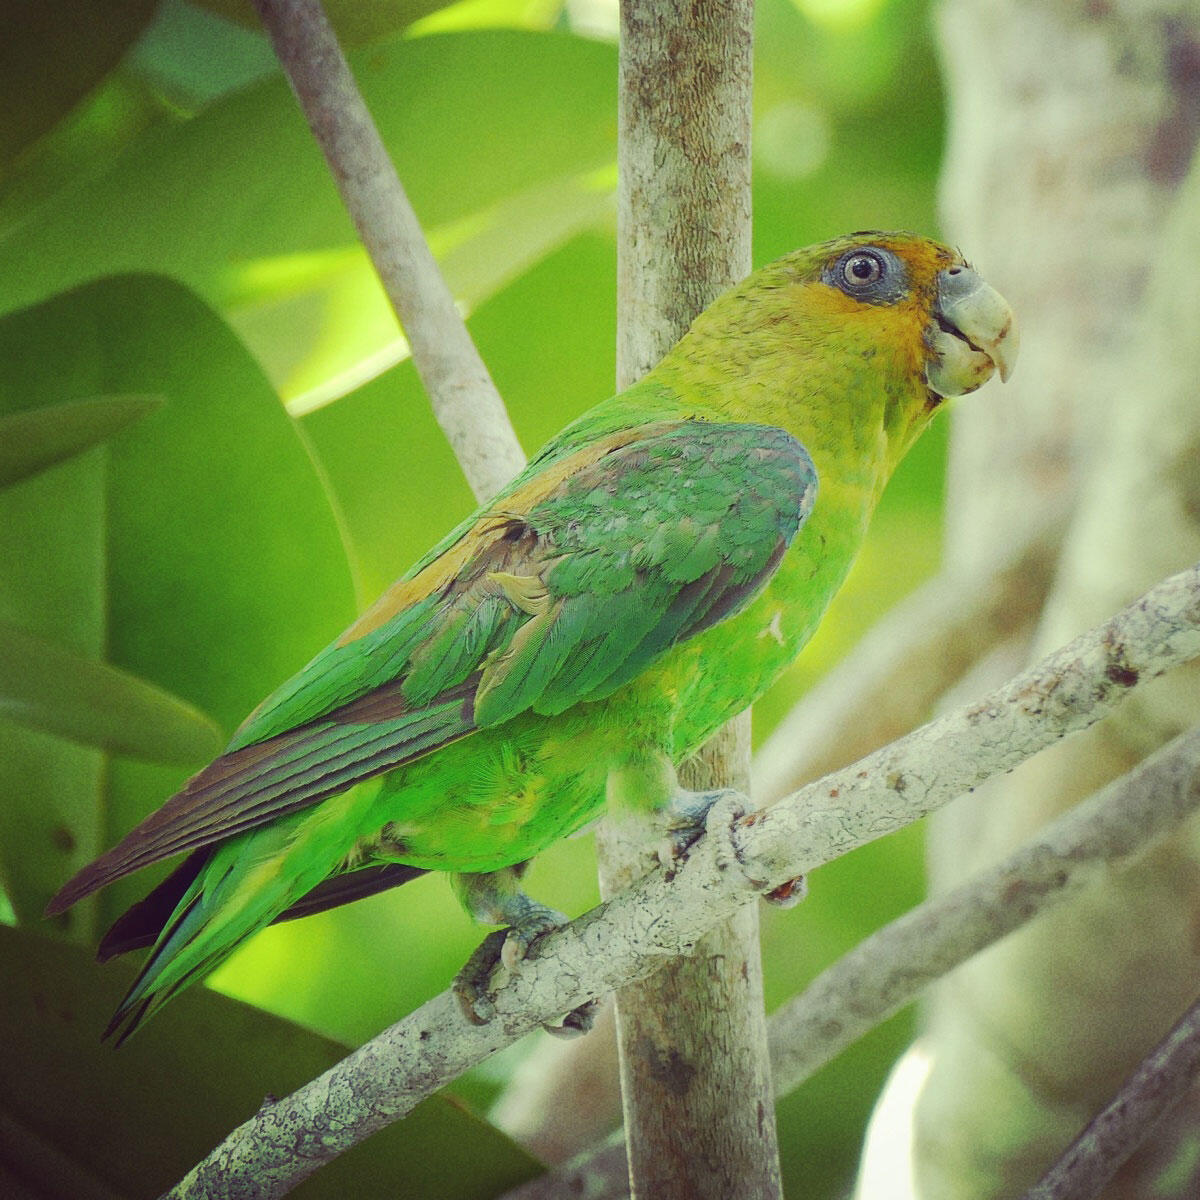 The Golden-tailed Parrotlet is a rare-ish endemic bird of east Brazil; this one put on a show in Leo's front yard! Noah Strycker